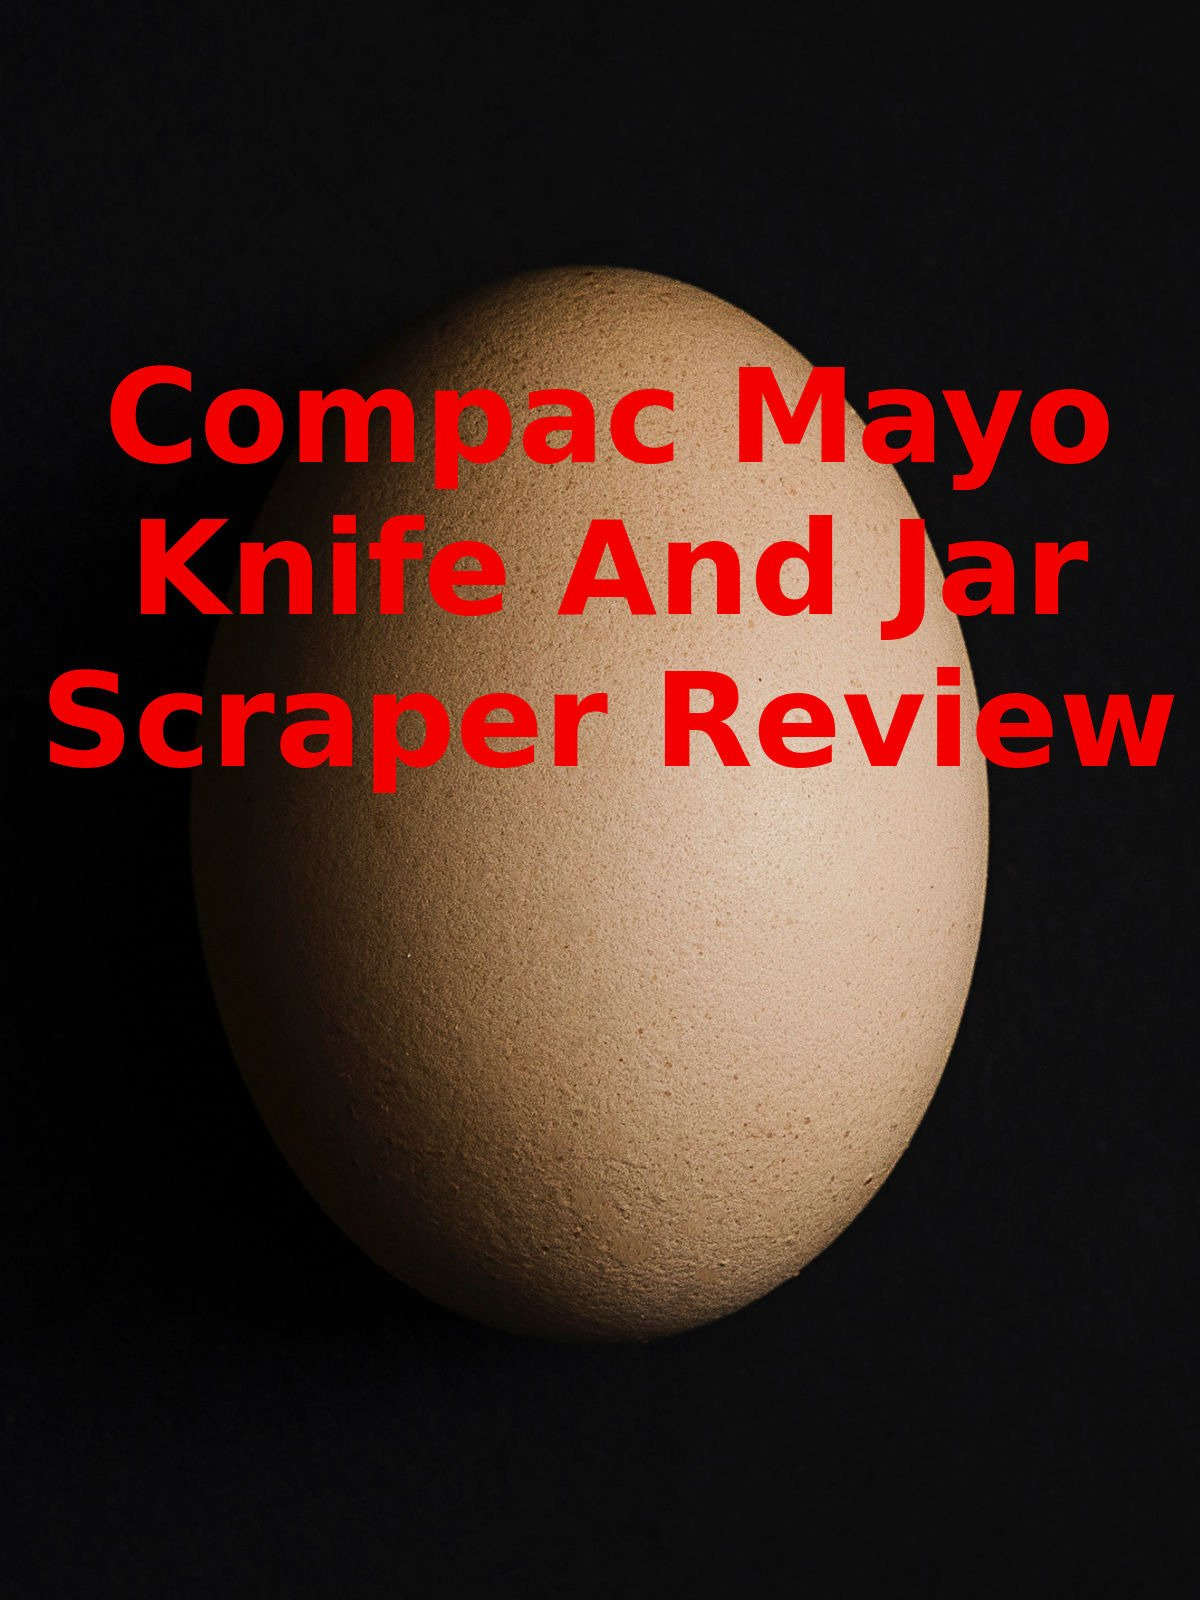 Review: Compac Mayo Knife And Jar Scraper Review on Amazon Prime Video UK